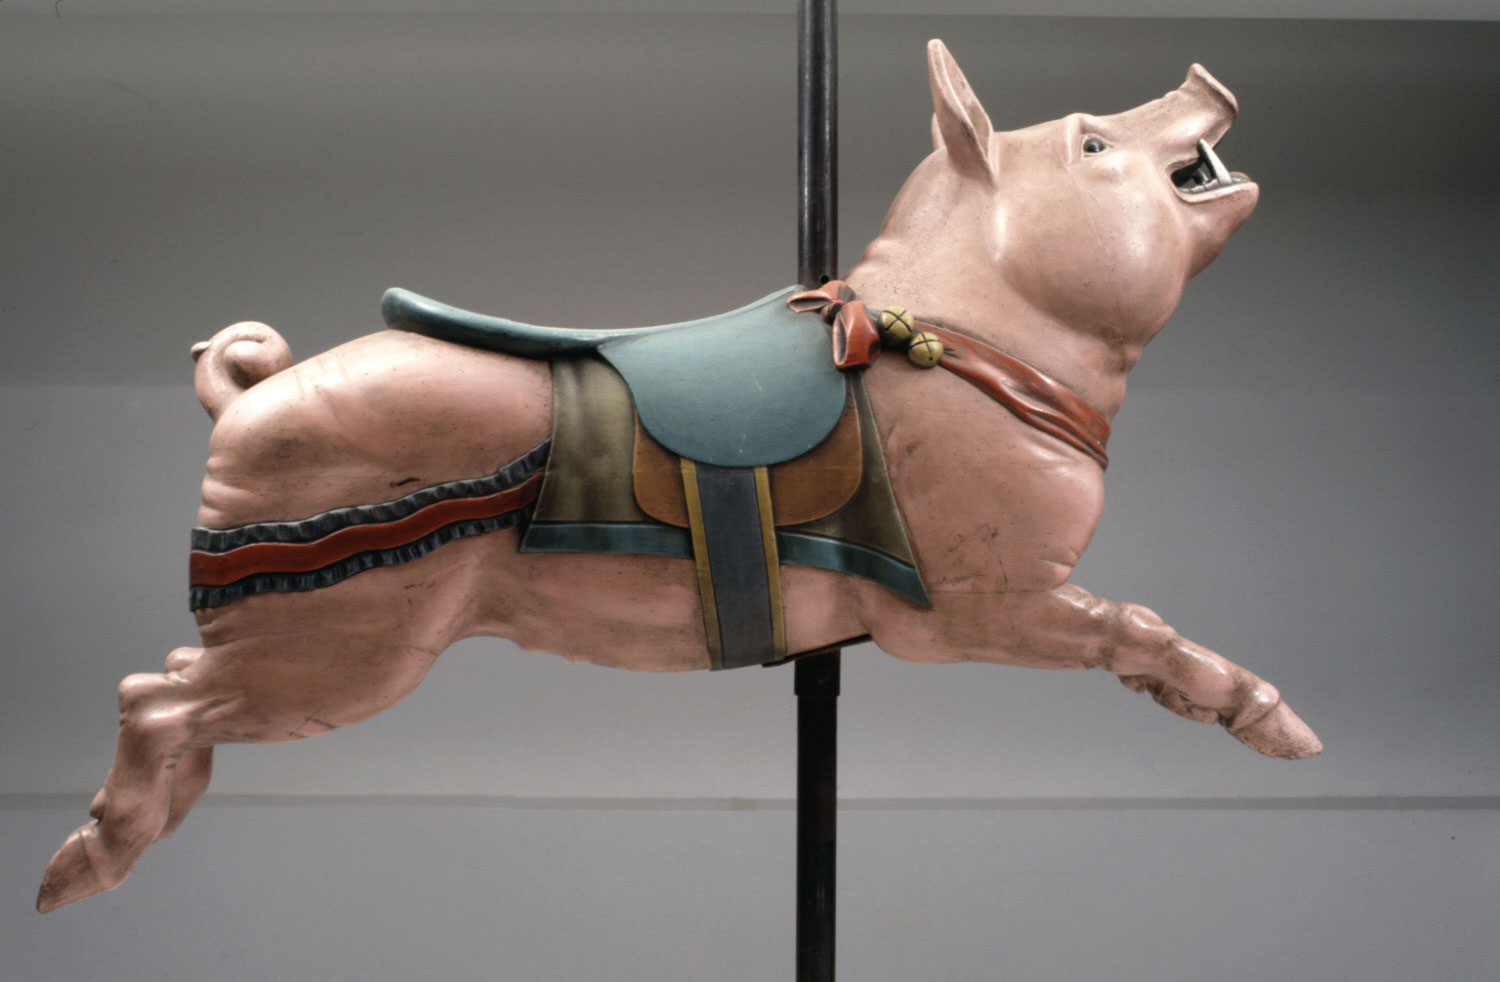 Carousel Figure of a Pig